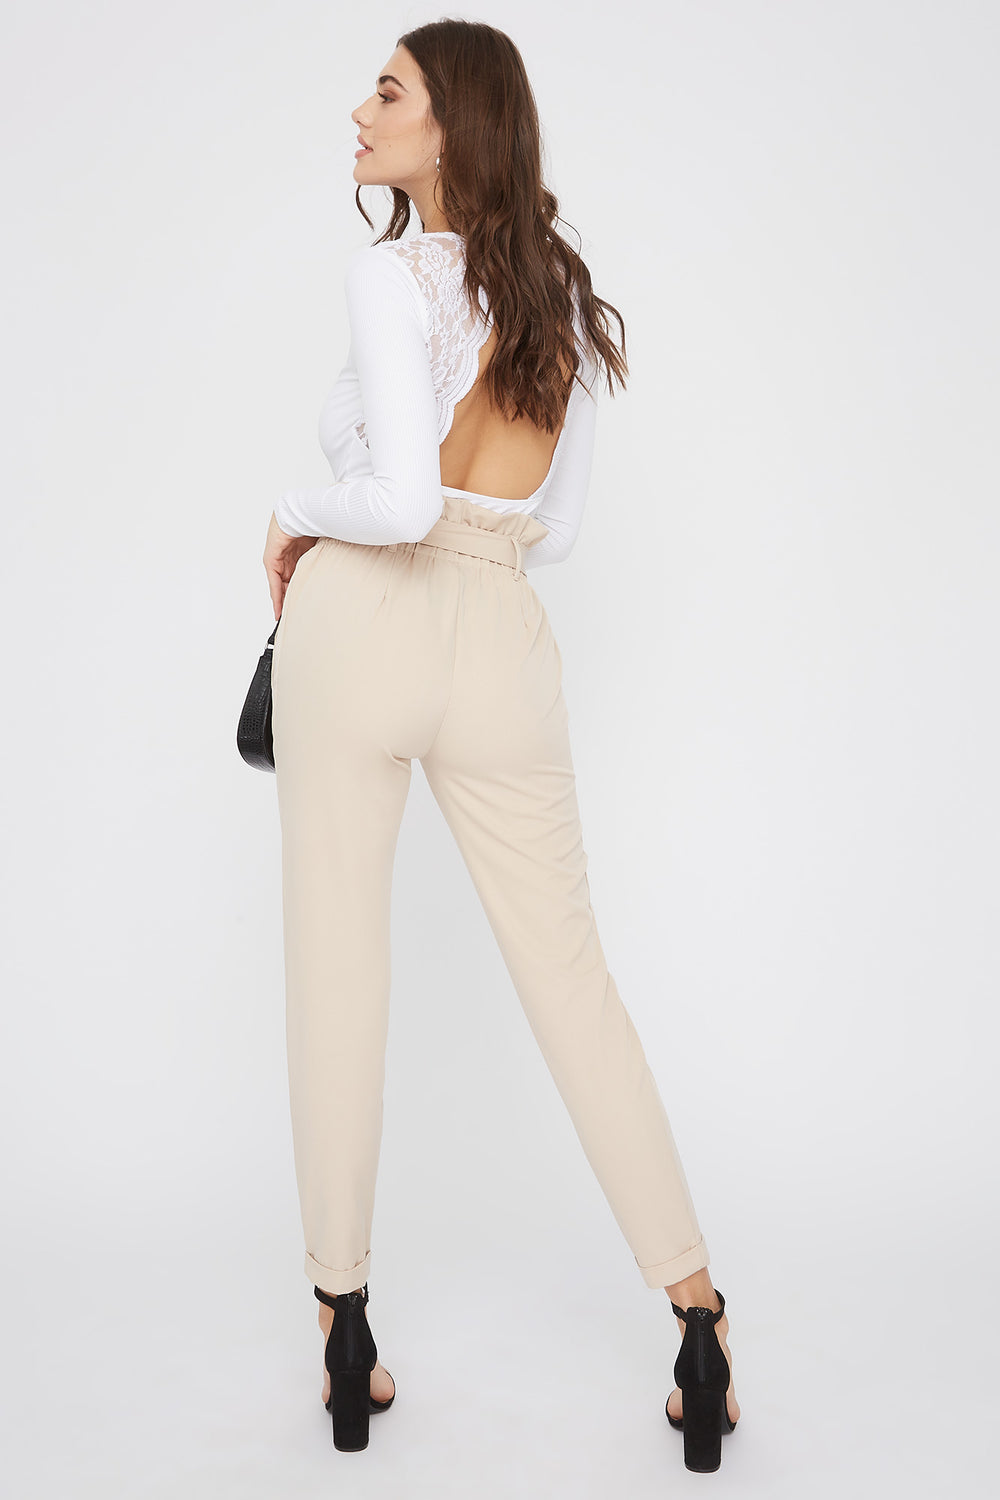 Self Belted Pull-On Paperbag Pant Taupe